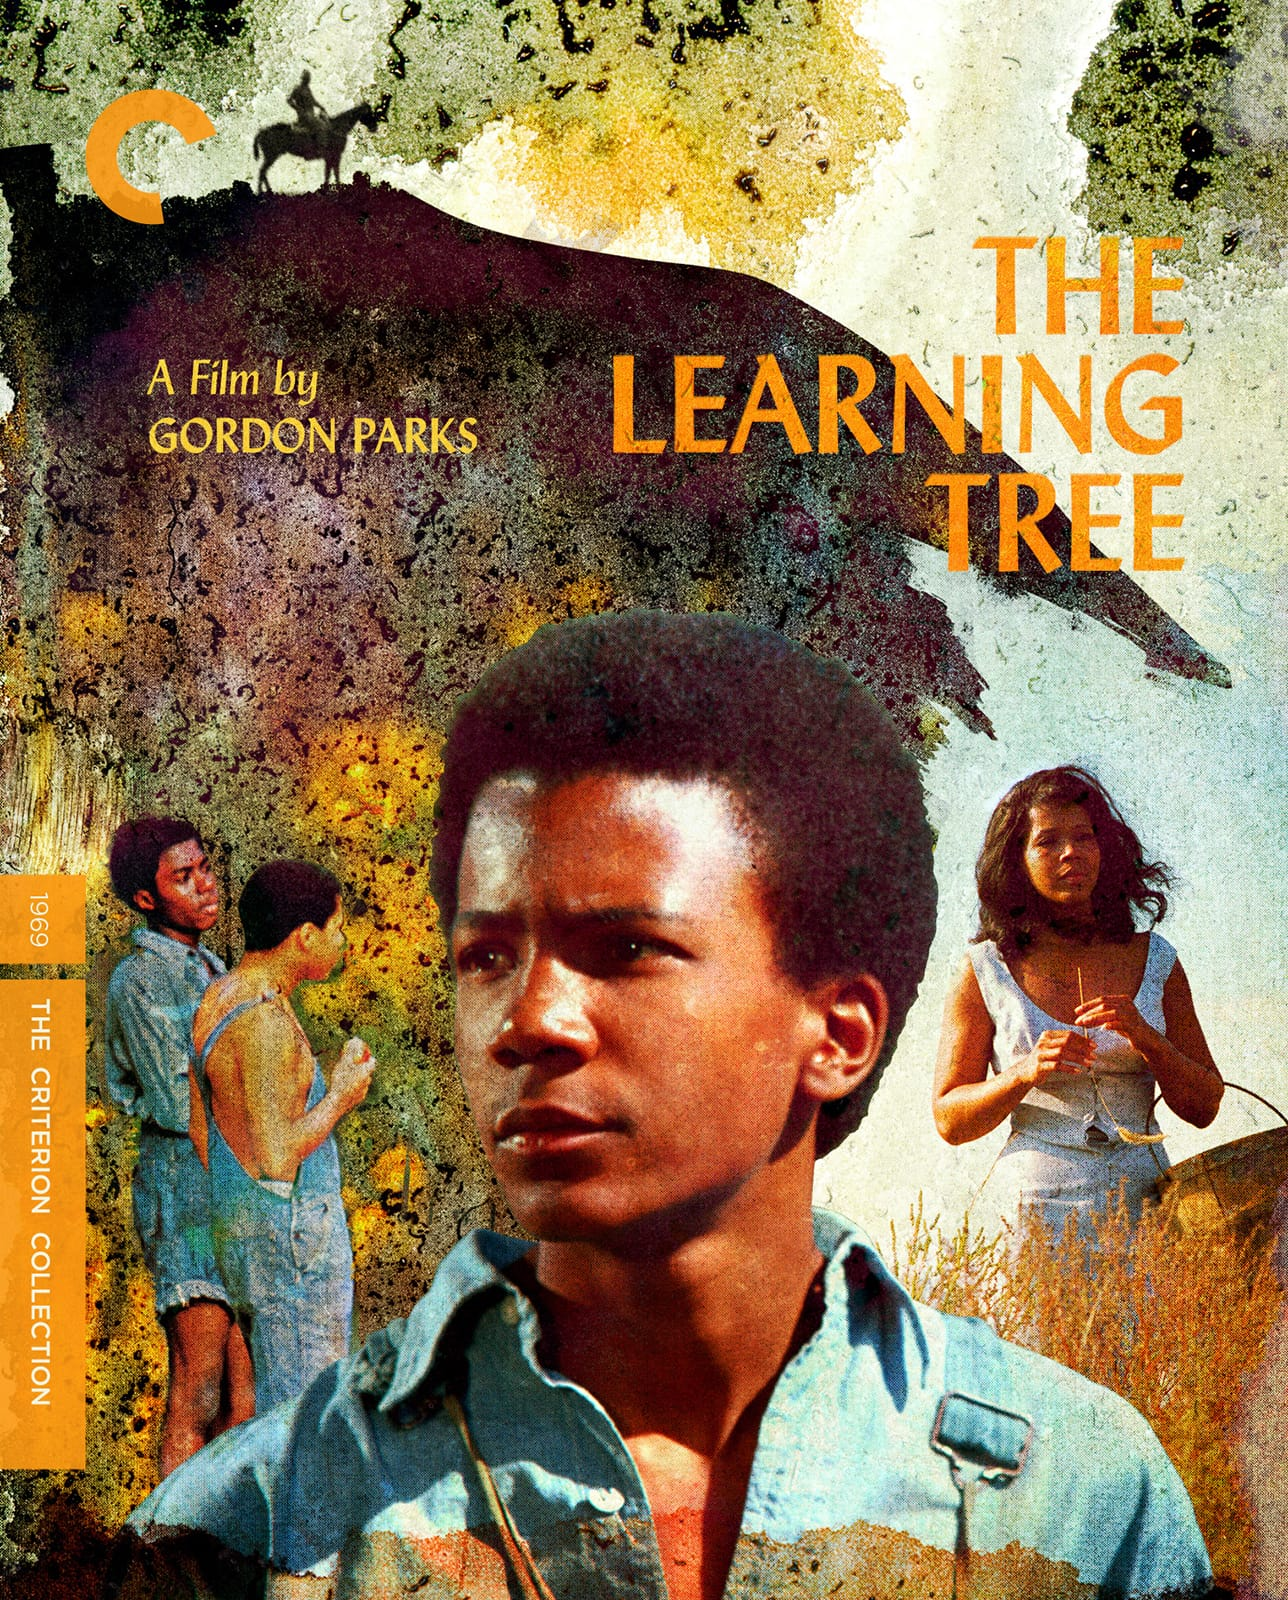 The Learning Tree (1969) | The Criterion Collection